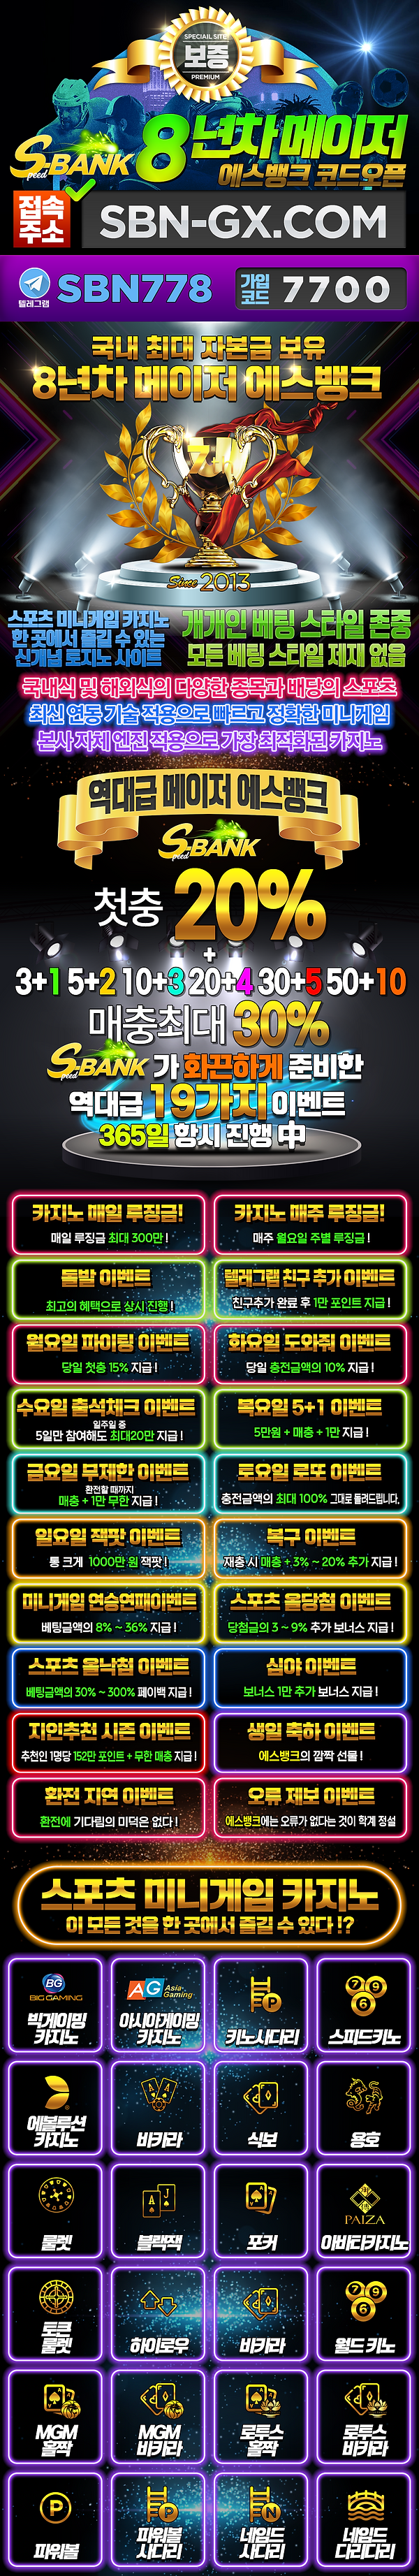 s-bank-event-20217700.png